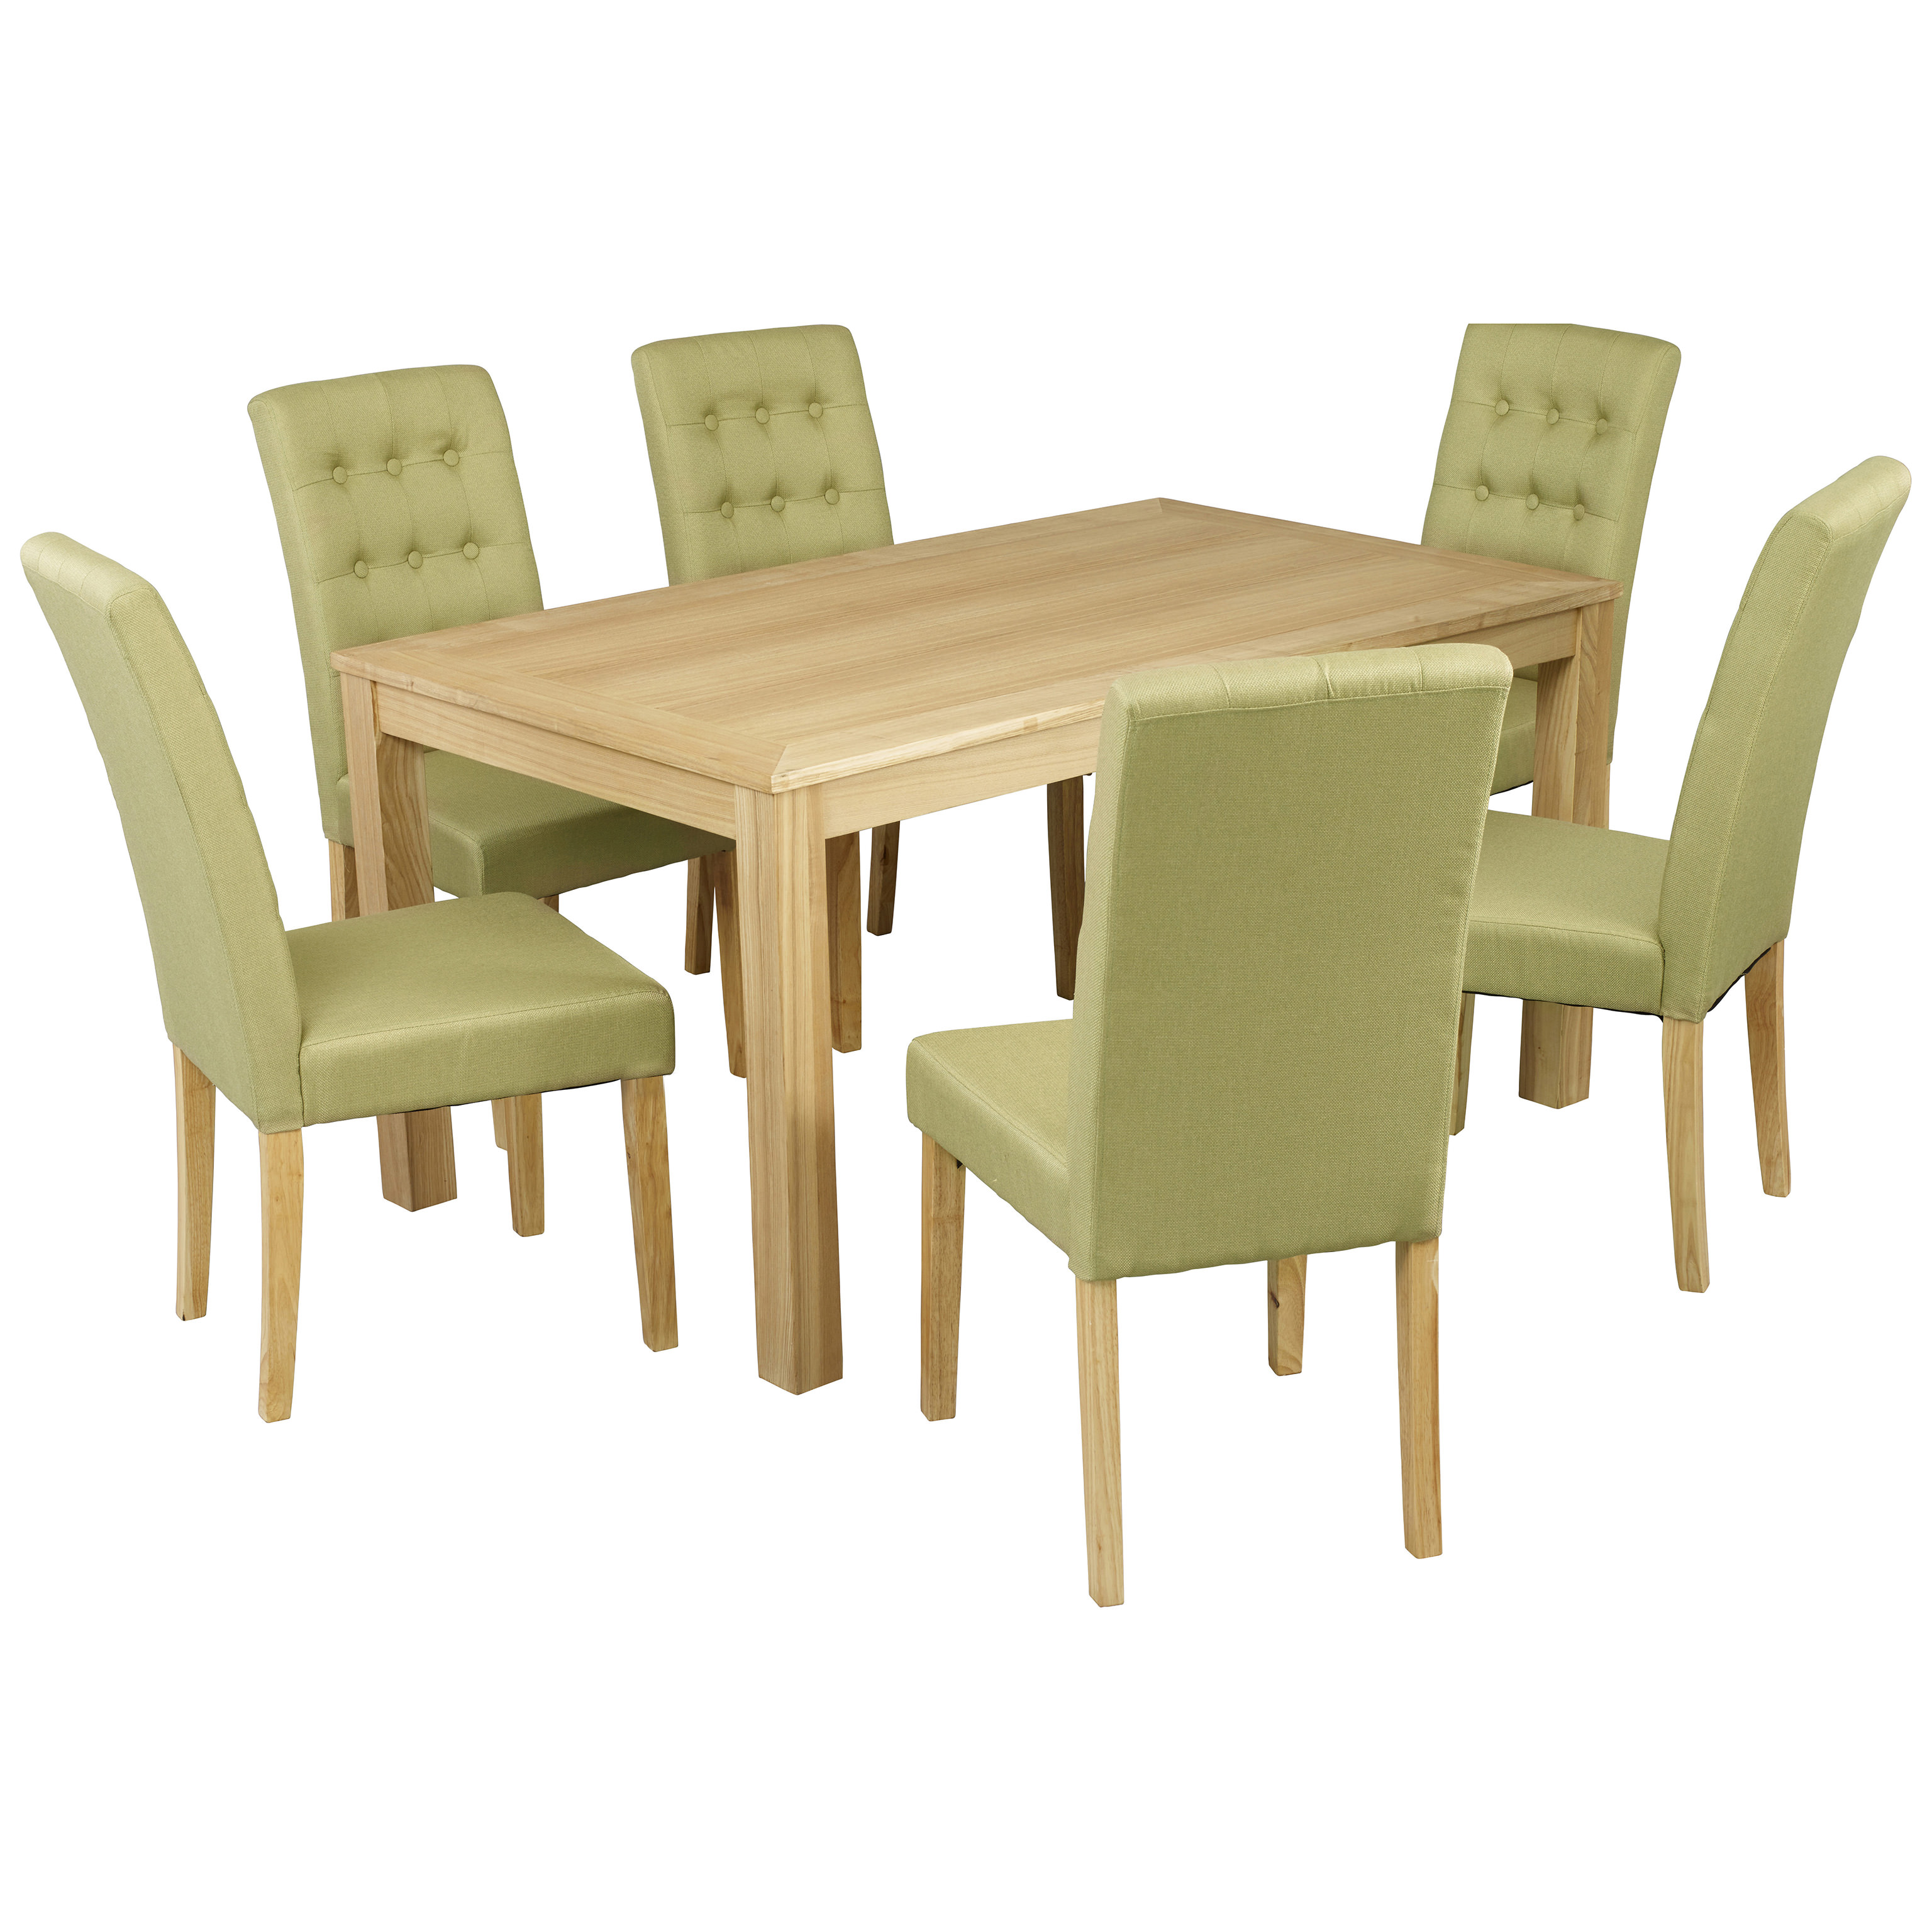 Purple Kitchen Chairs: Oak Dining Table And Chair Set With 6 Fabric Seats